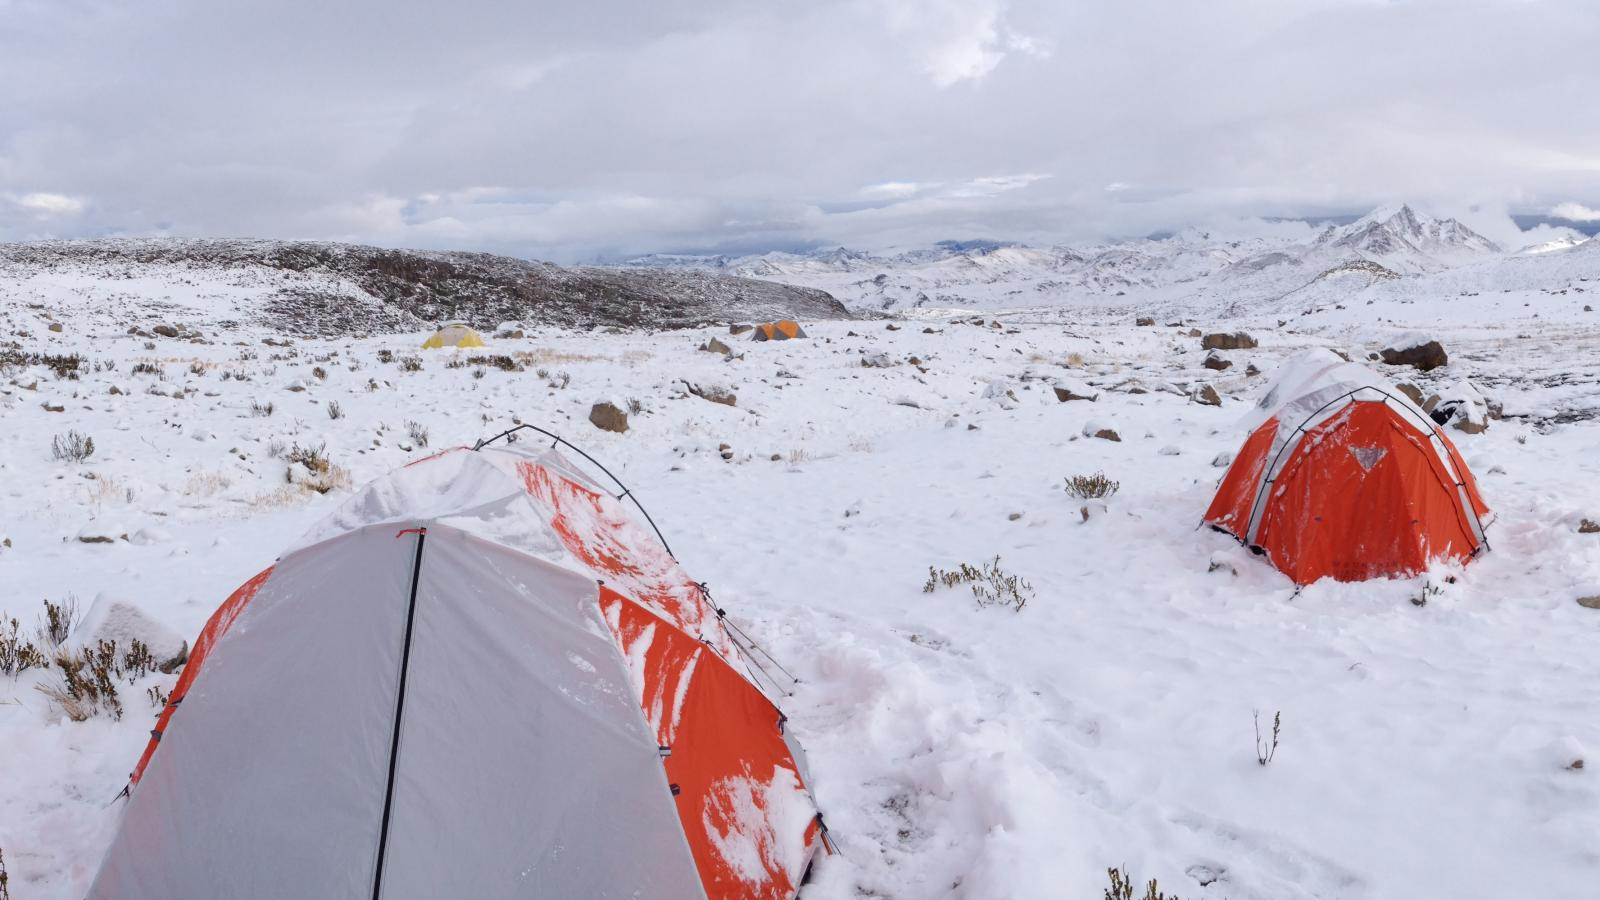 Tents in snow-covered terrain with mountains in background